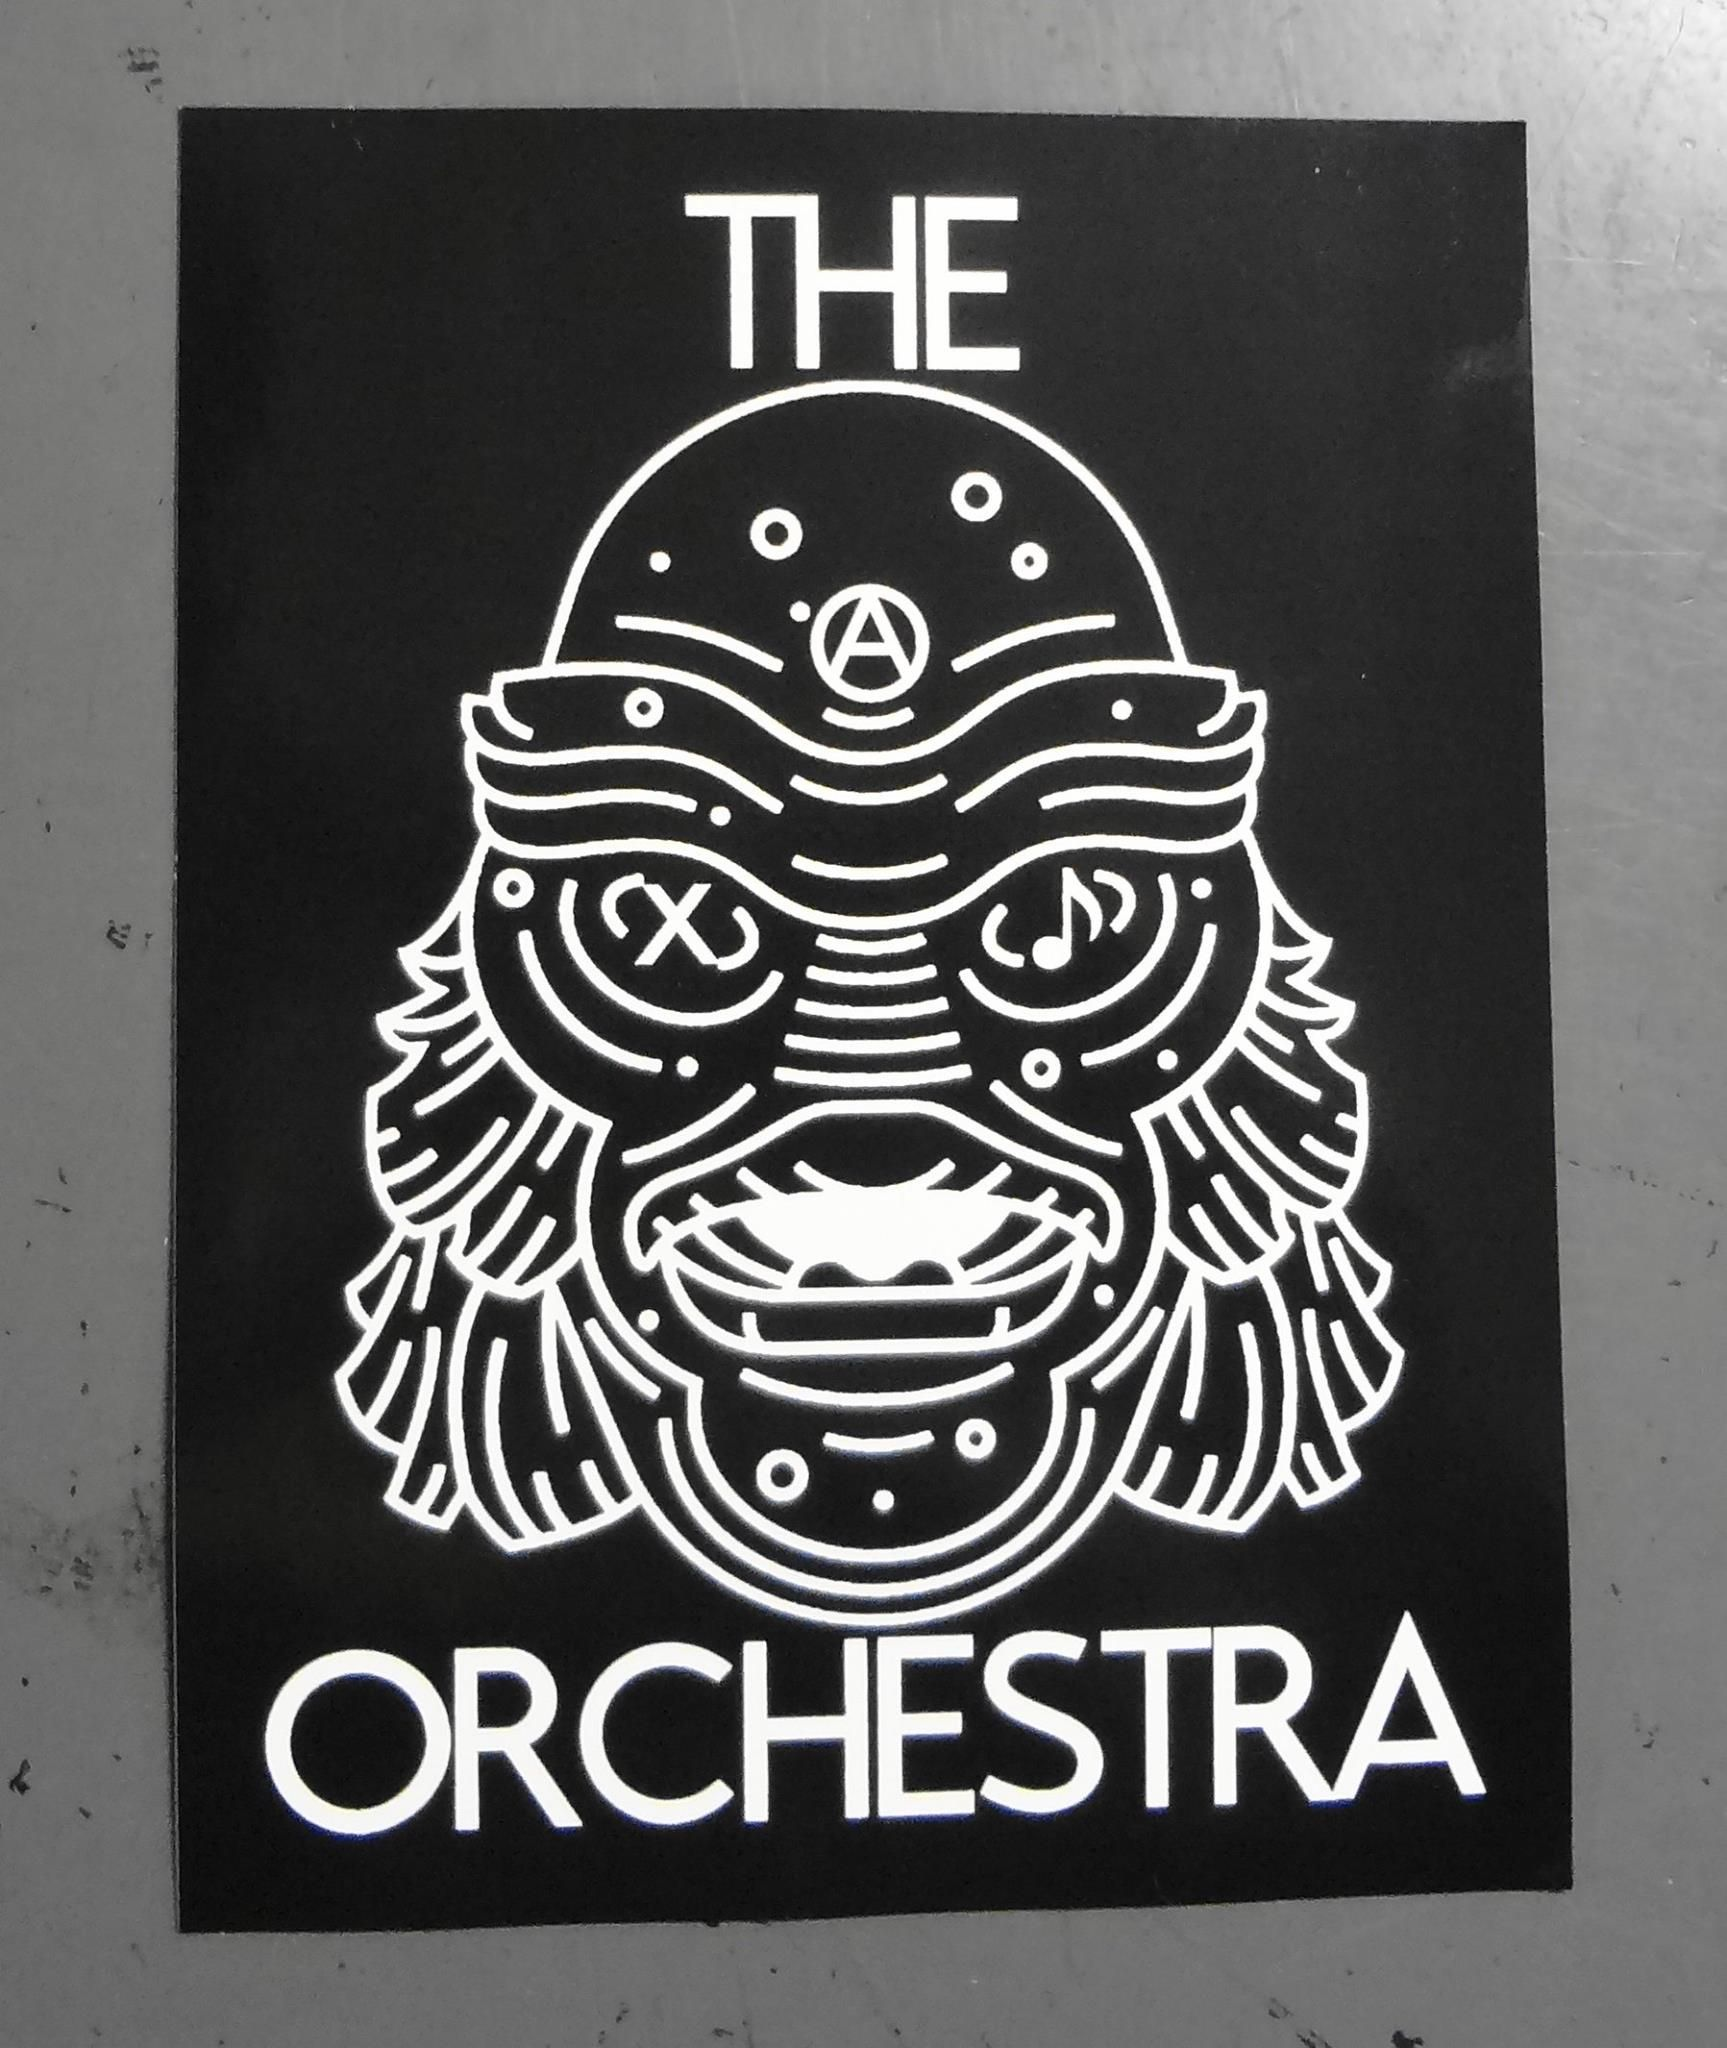 The Orchestra Stickers Decals Swag Pinterest Prints - Promotional custom vinyl stickers business